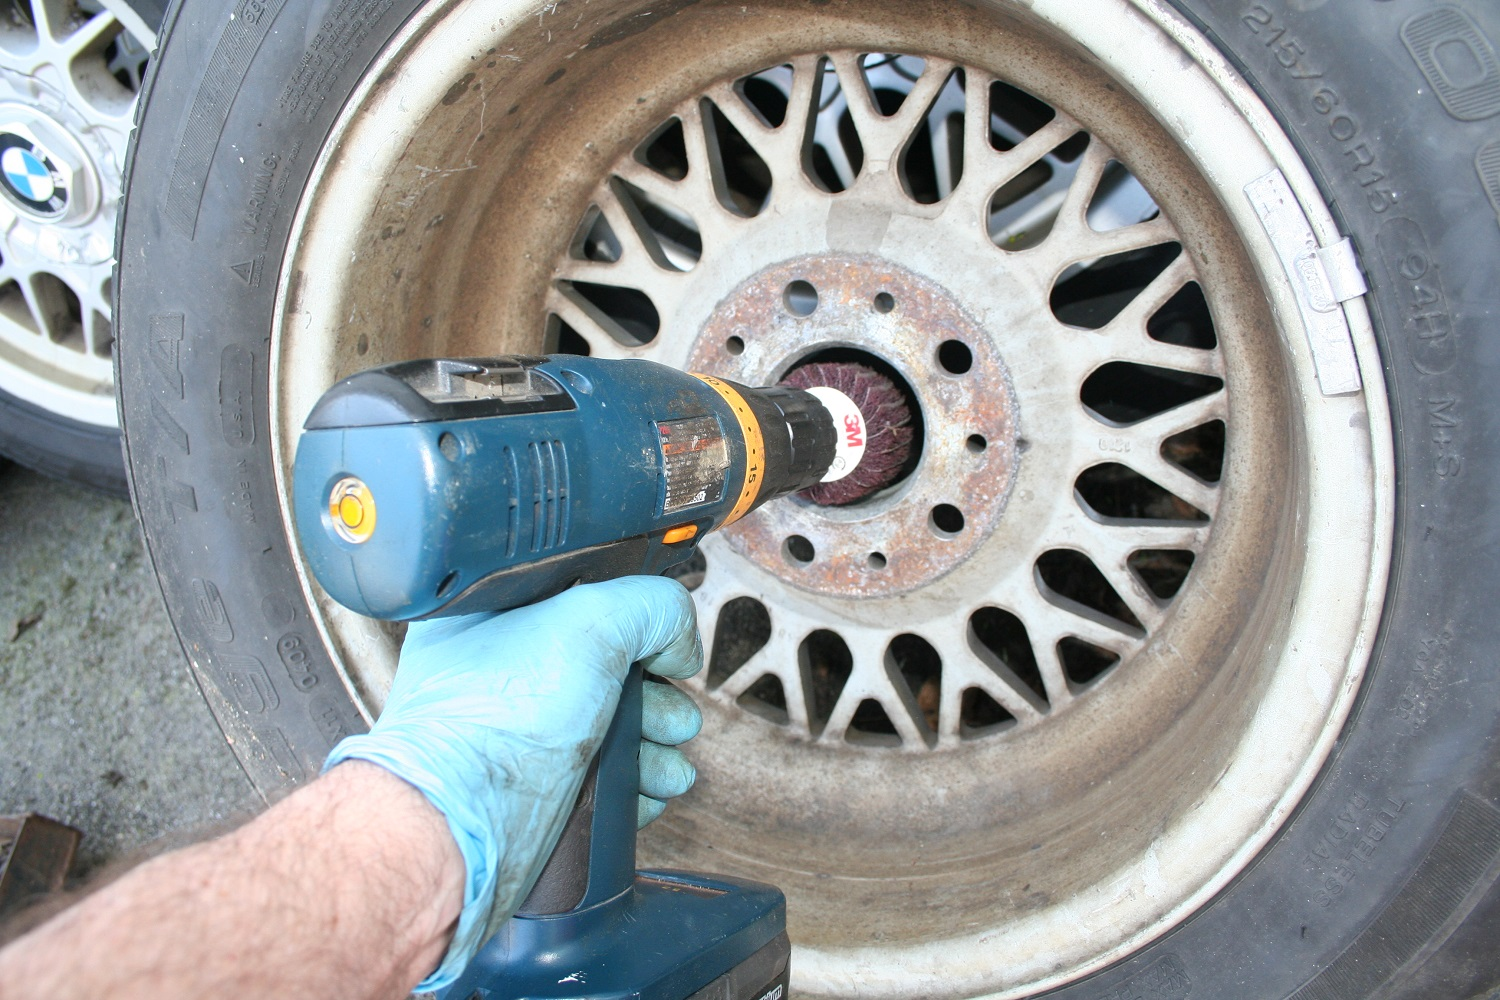 Cleaning corrosion off the wheel center bore. Drill with cleaning wheel